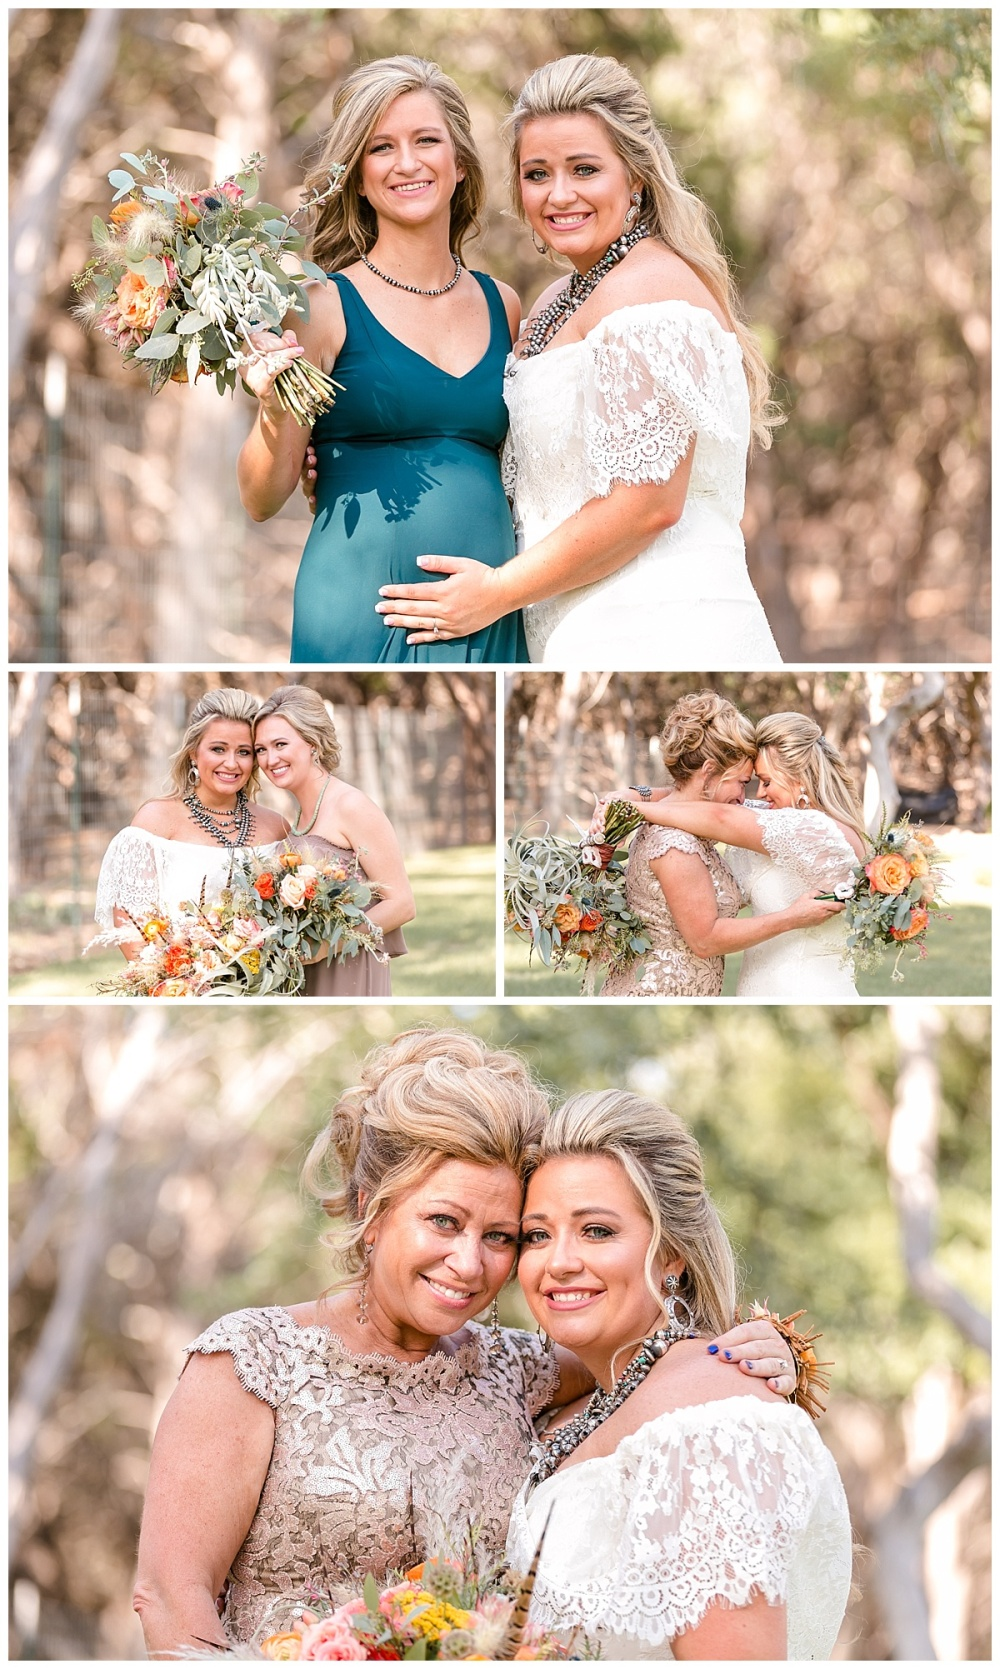 Texas-Wedding-Photographer-Braded-T-Ranch-Kendalia-Bride-Groom-Southwestern-Style-Carly-Barton-Photography-Vogt_0040.jpg